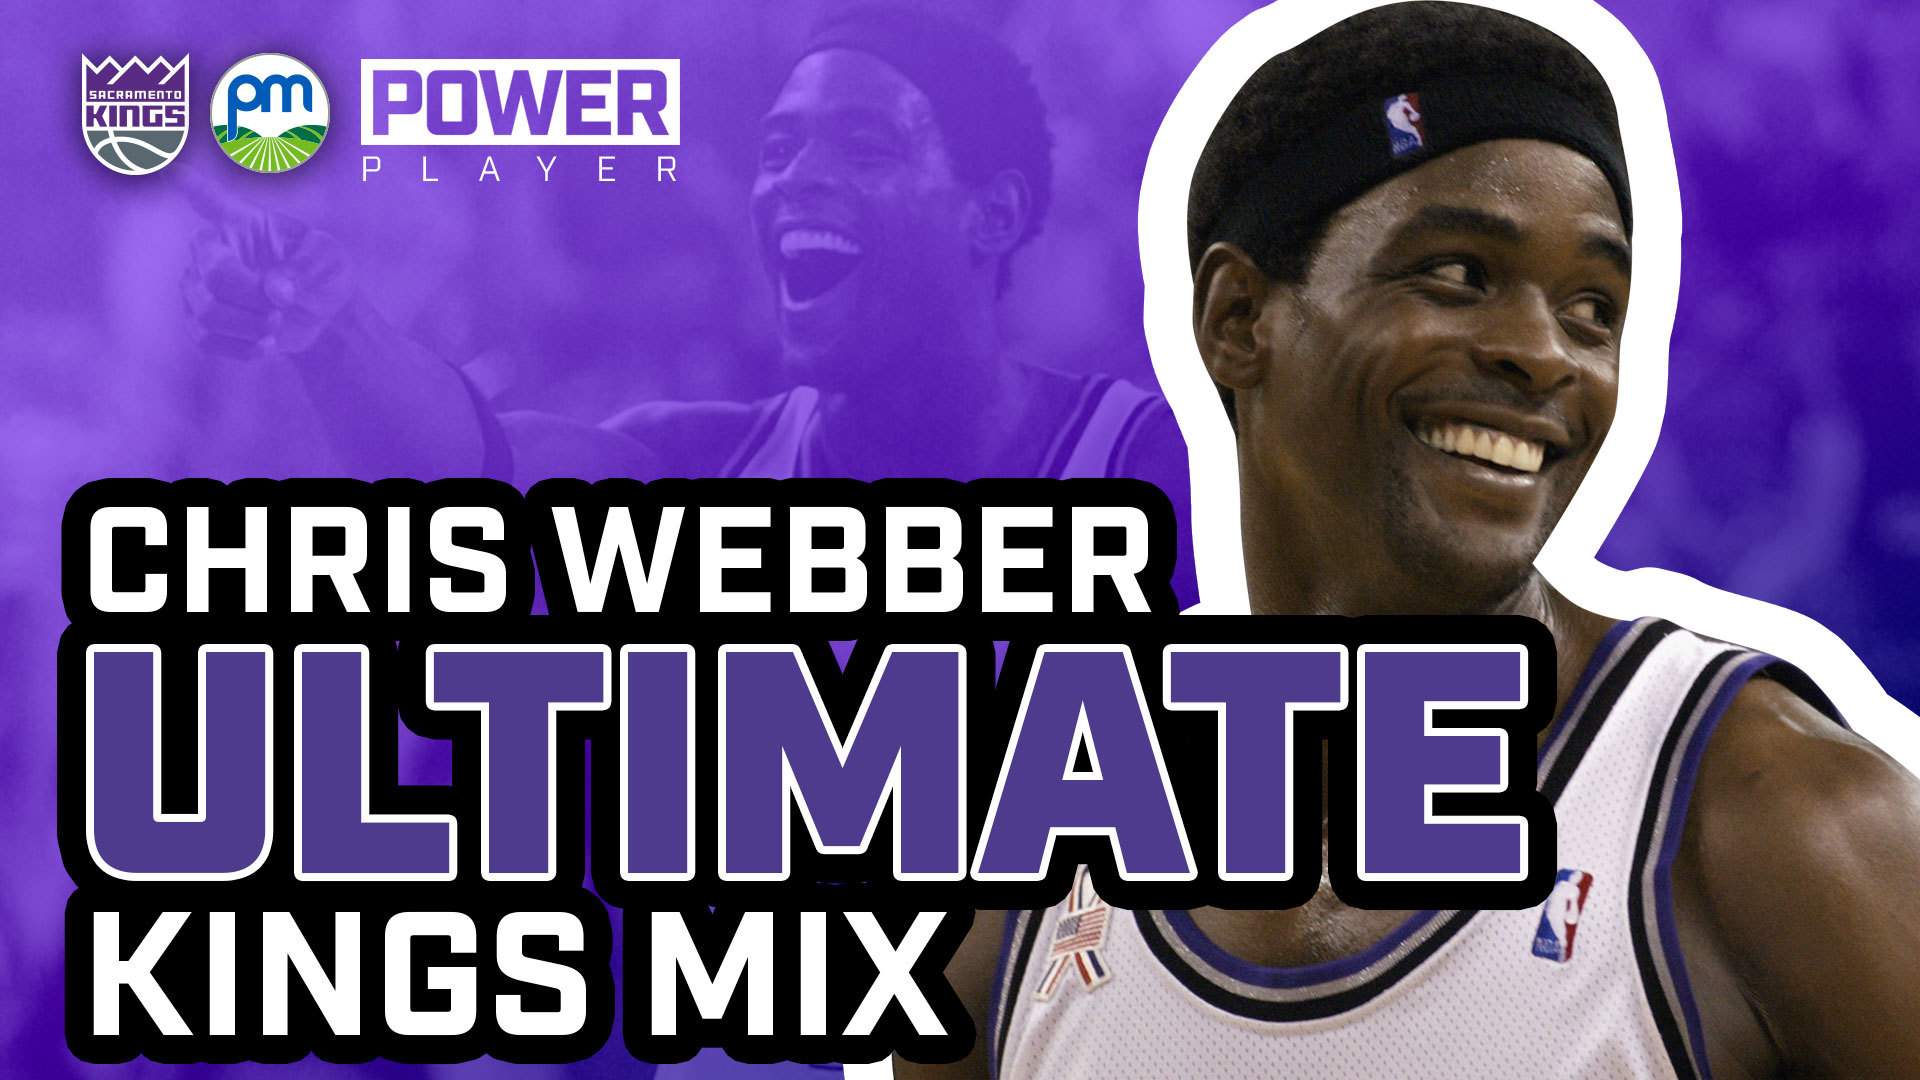 Chris Webber Ultimate Kings Mix | Power Market Power Player